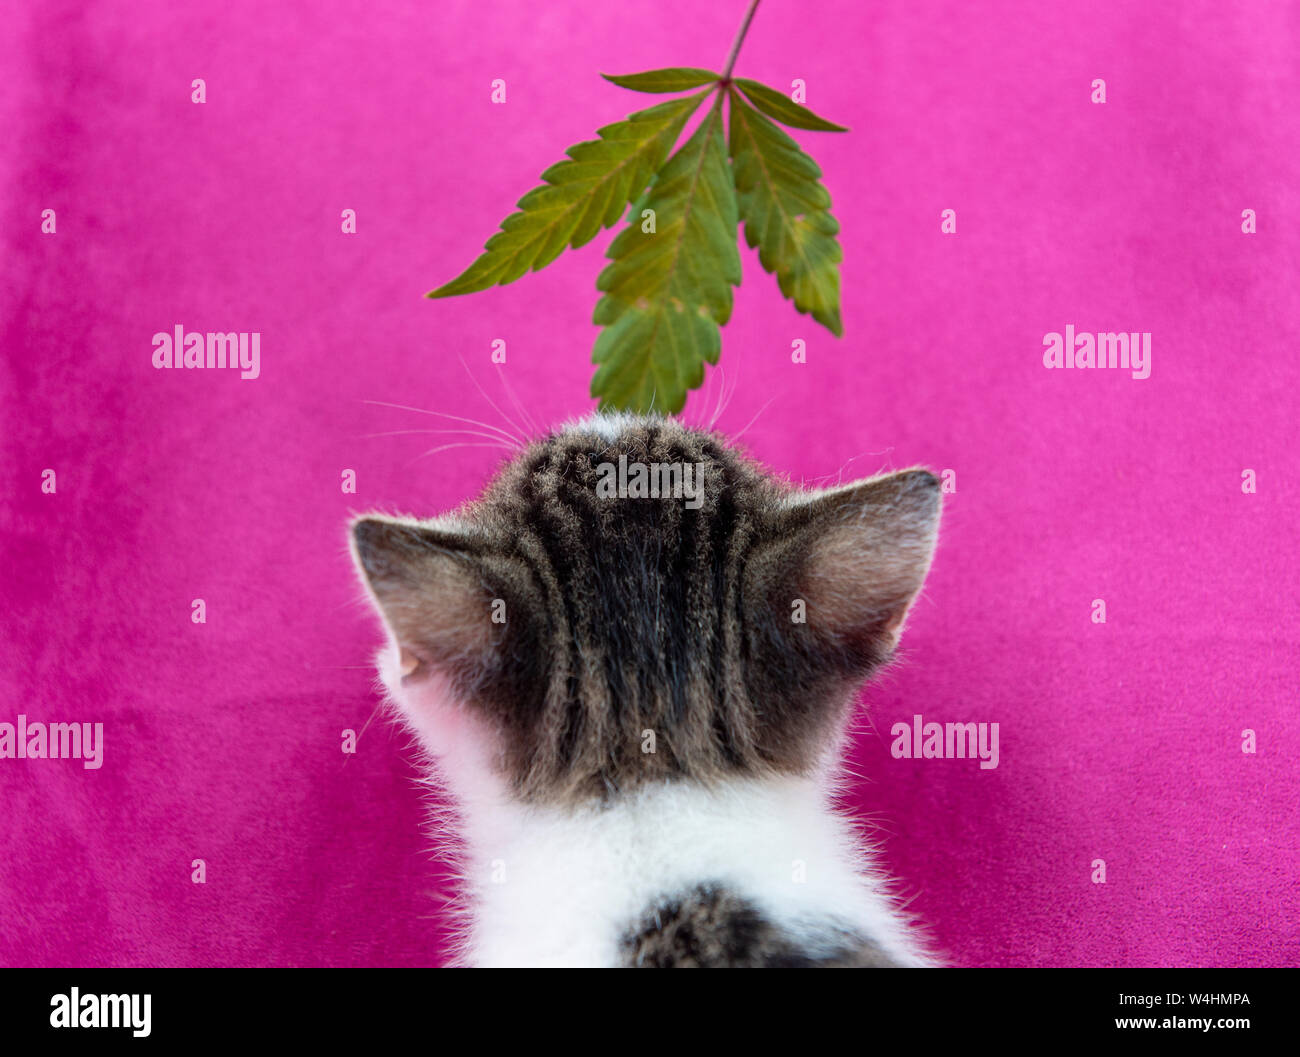 Small cat smelling a cannabis leaf on pink background, marijuana for pets concept Stock Photo